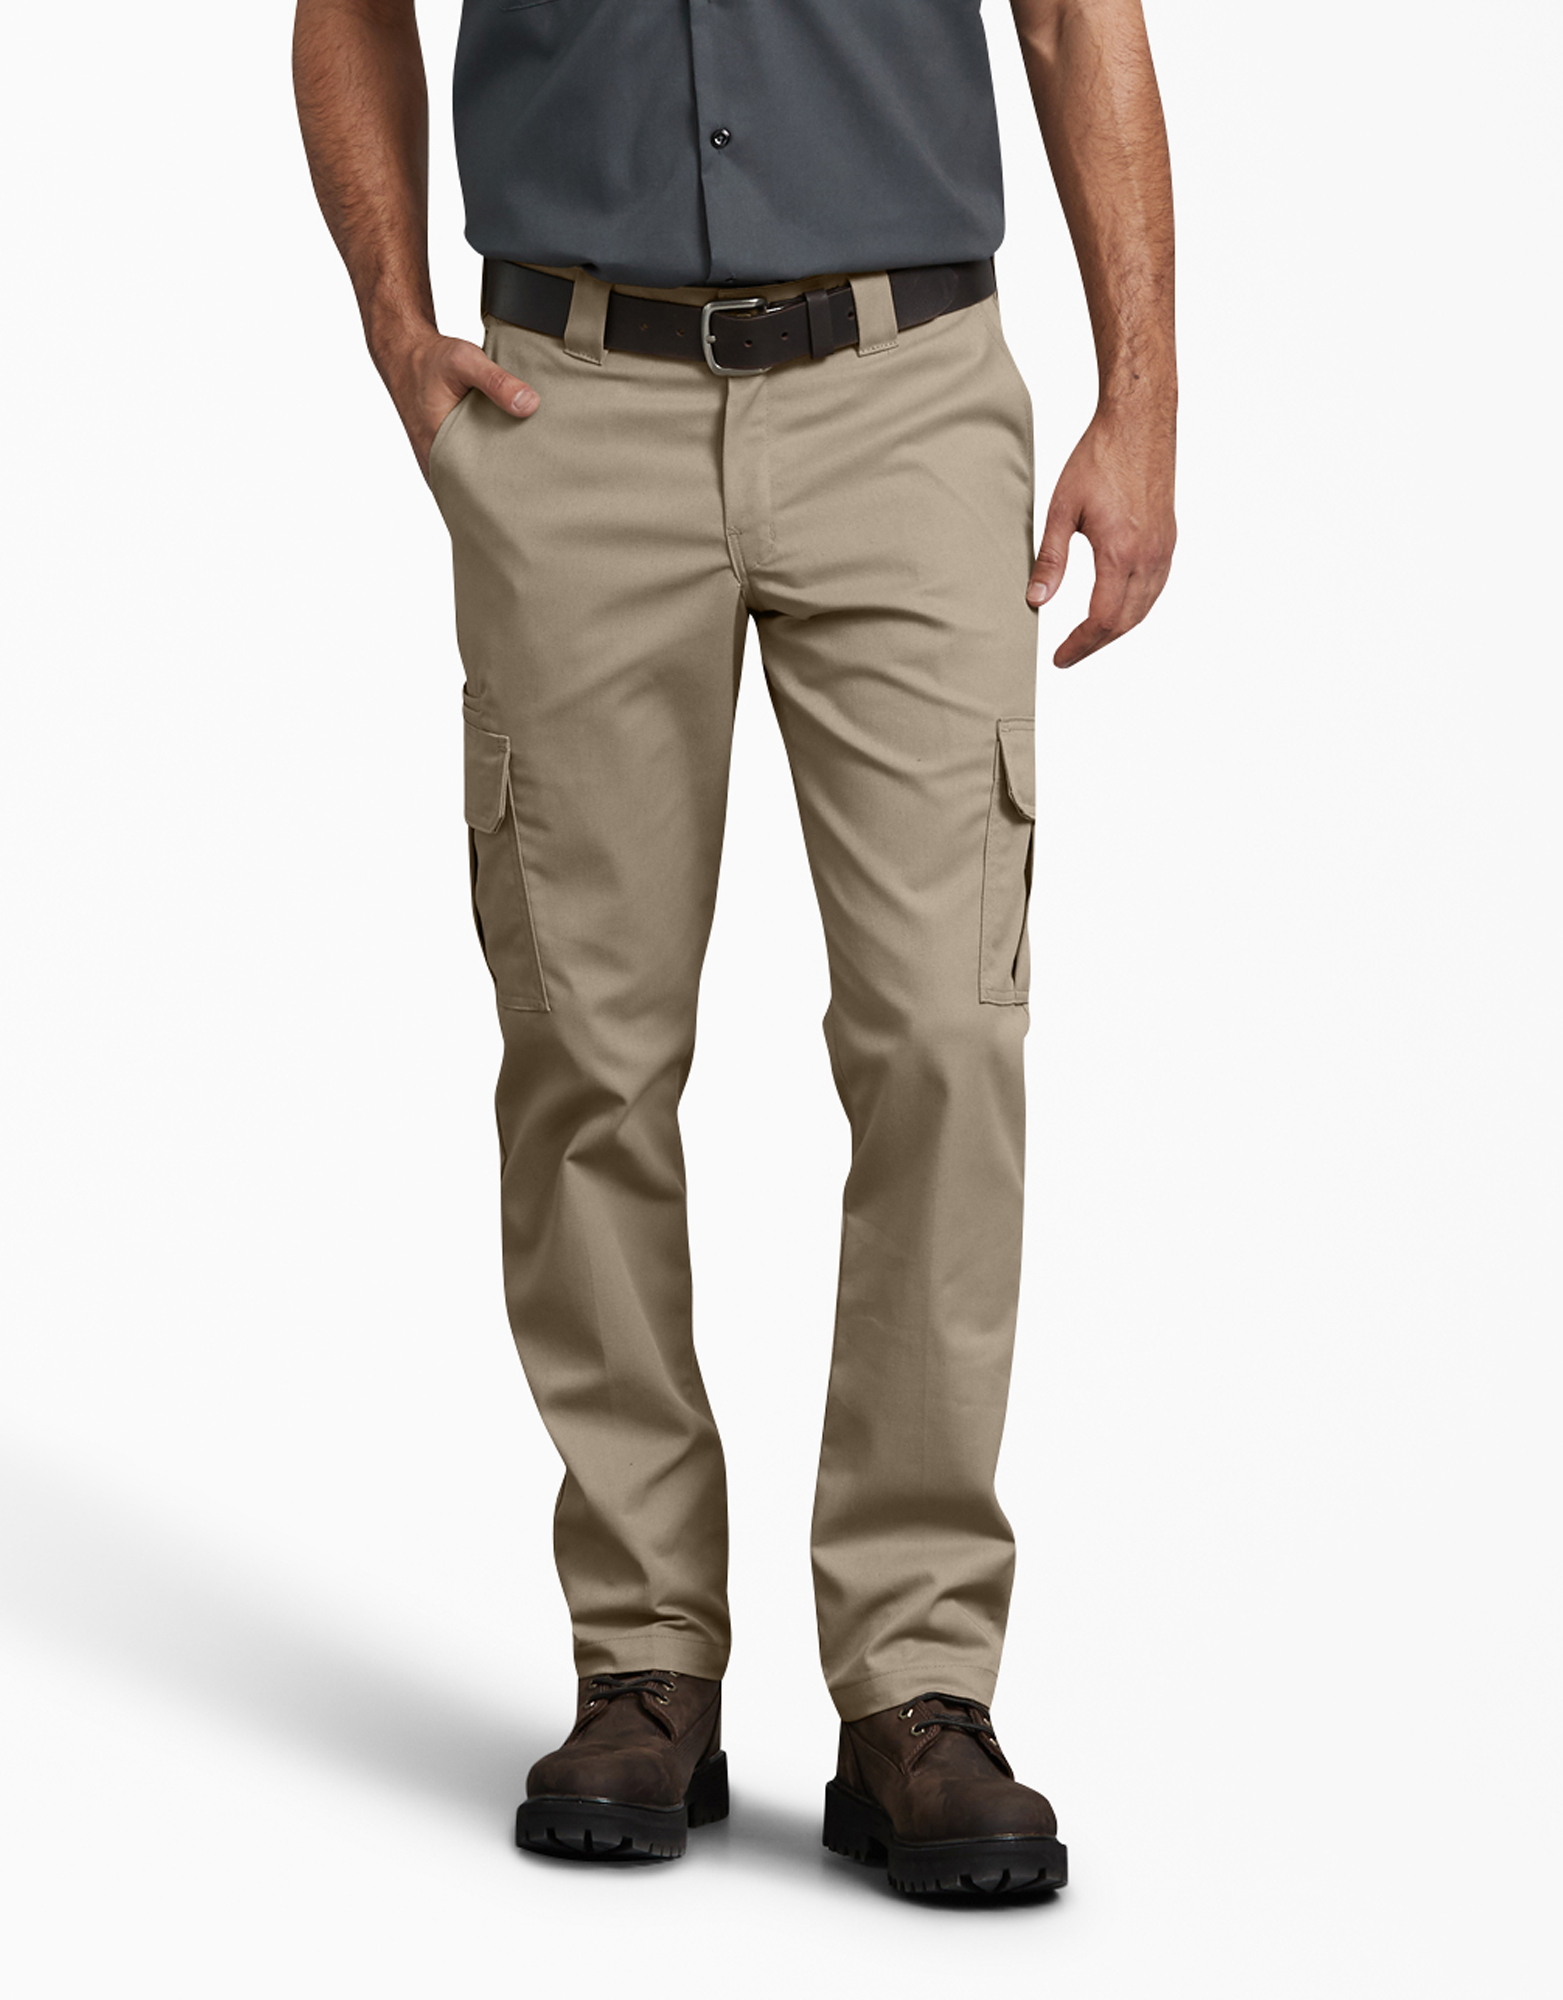 FLEX Slim Fit Straight Leg Cargo Pants - Desert Khaki (DS)